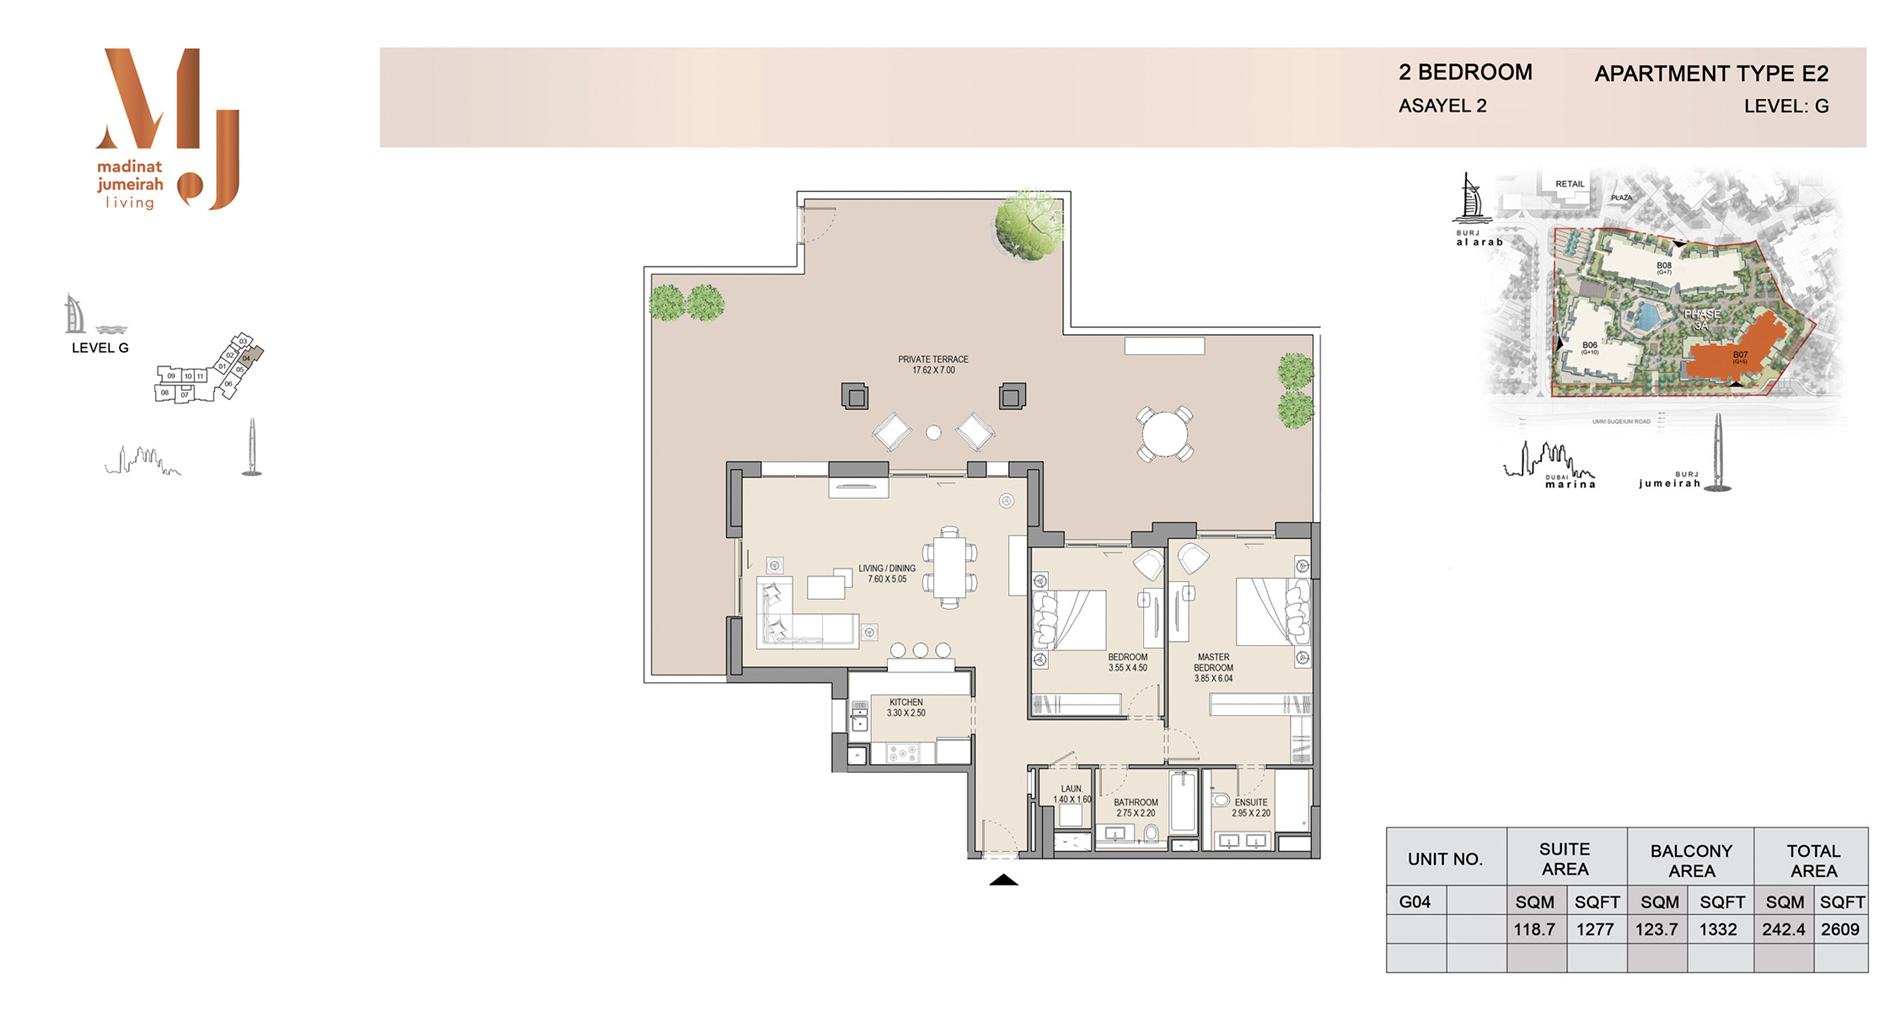 Building 2, 2 Bed Type E2 Level G, Size 2609    sq. ft.